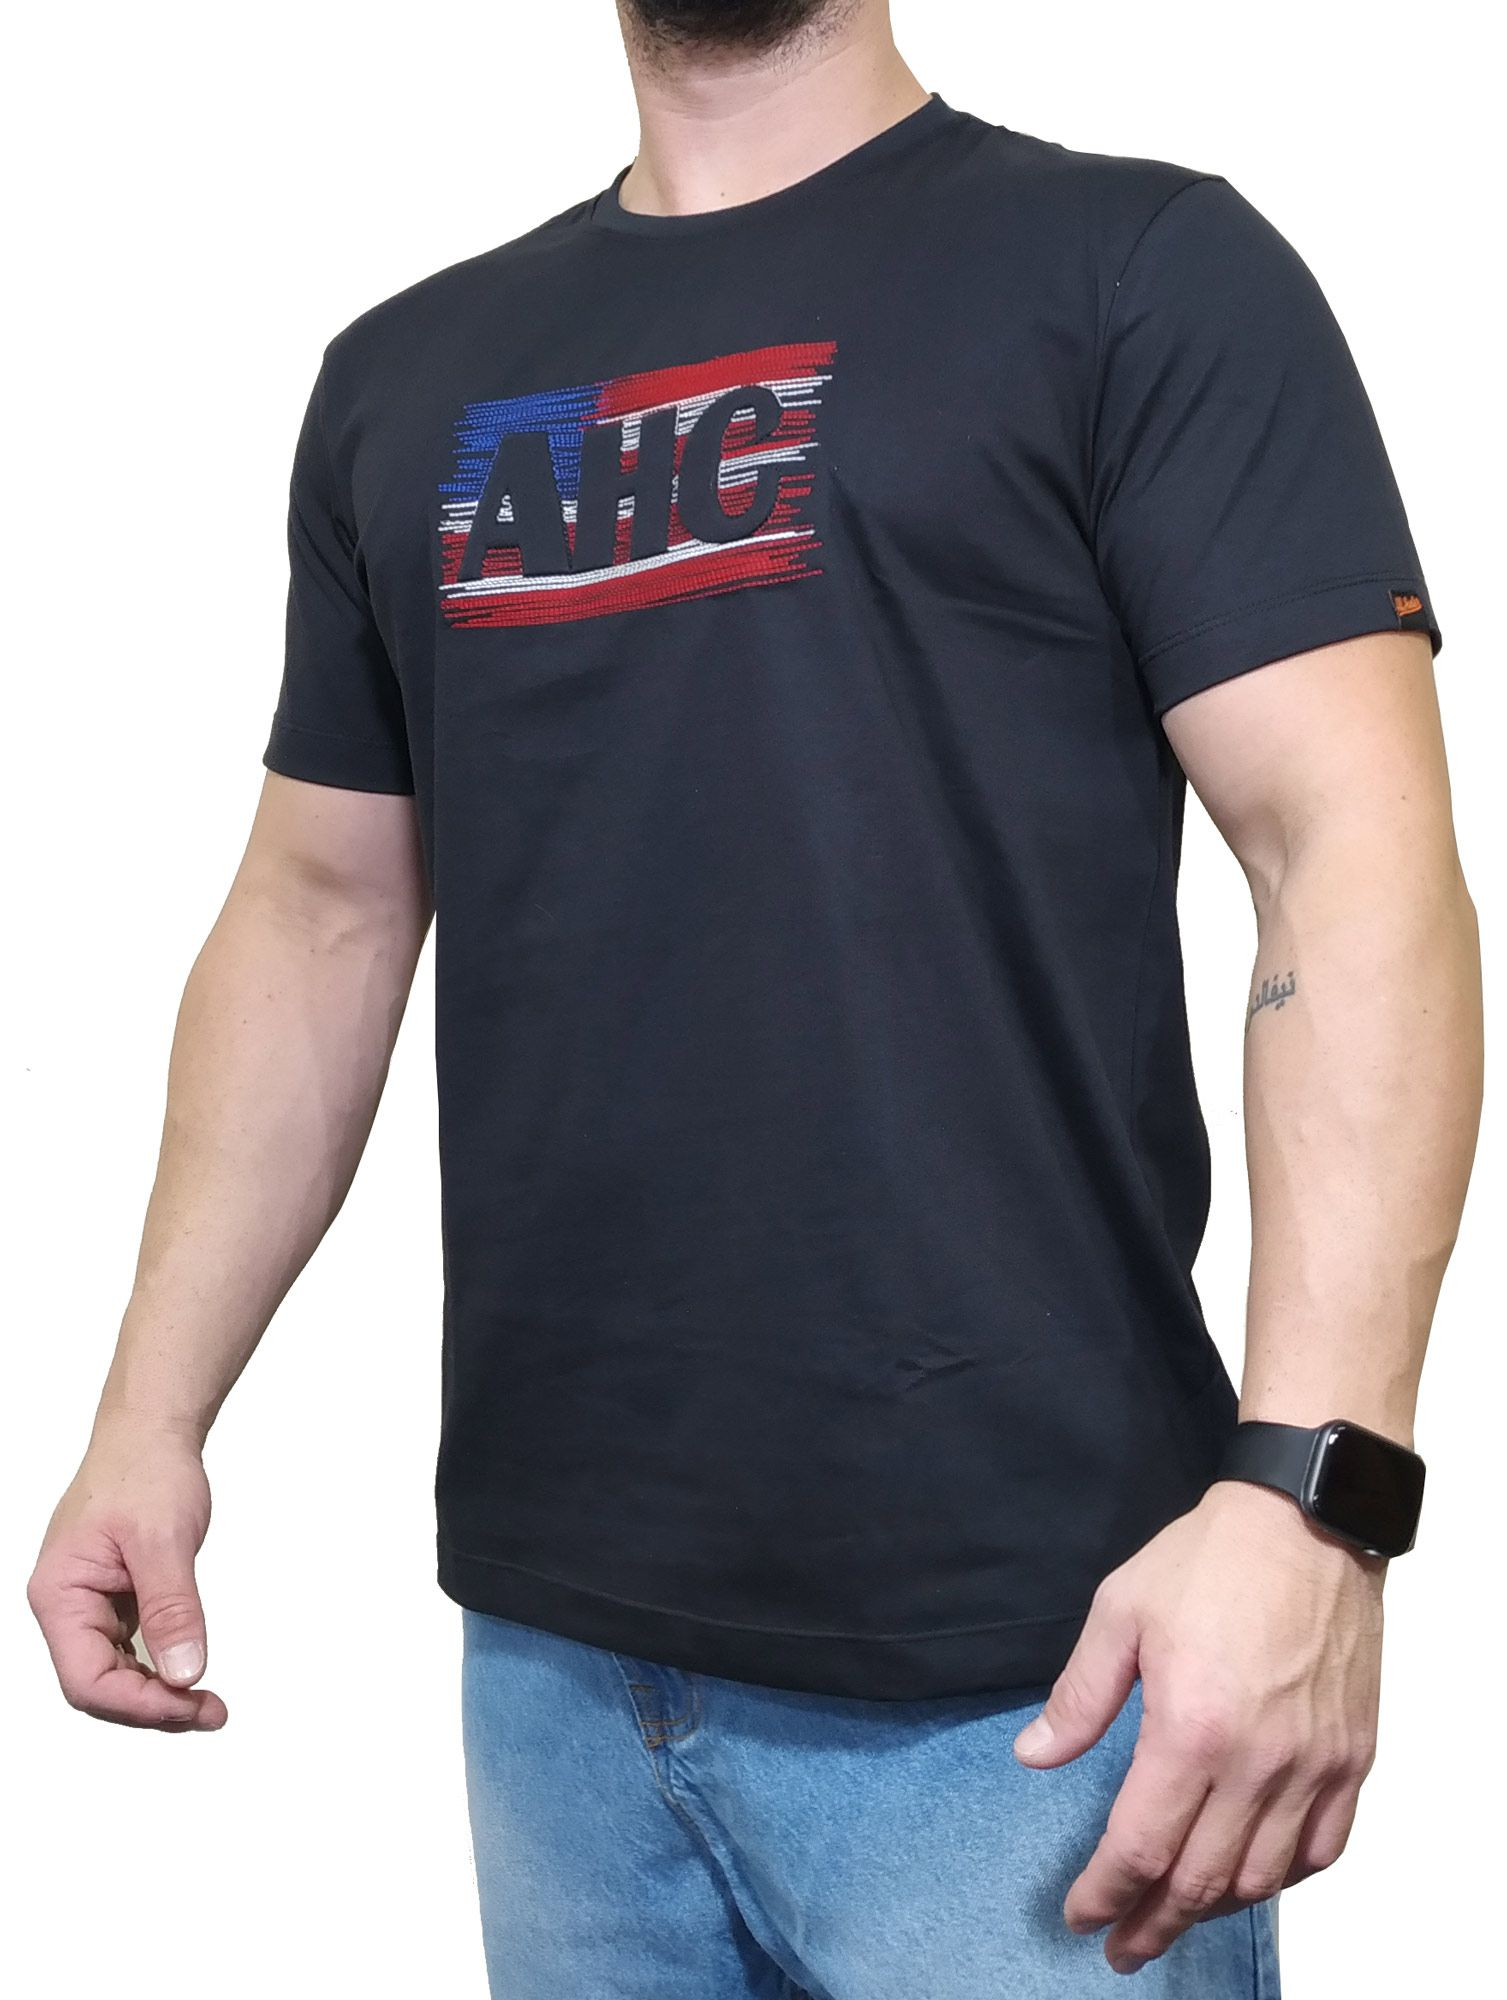 Camiseta All Hunter Preta Ref AHC 801